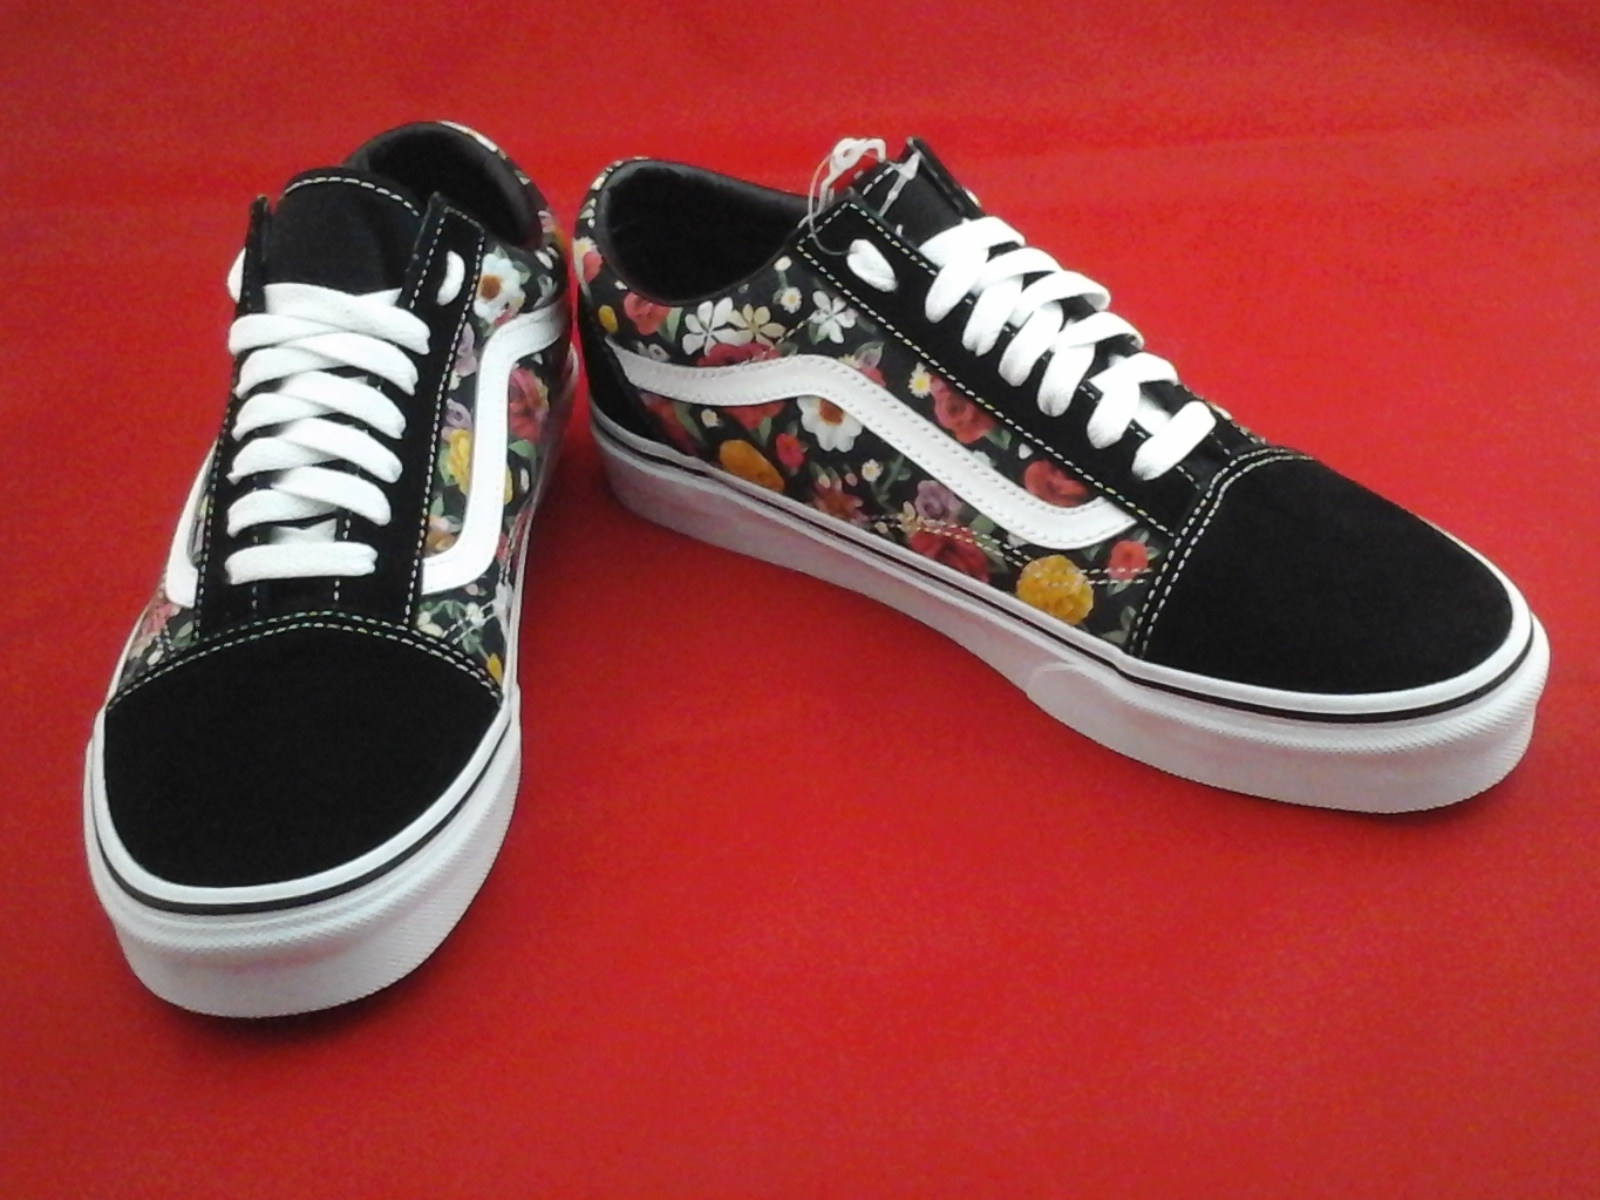 bd07036f2b VANS Shoes Black Roses Floral Old Skool Skate Unisex Mens 9 Womens 10.5 New